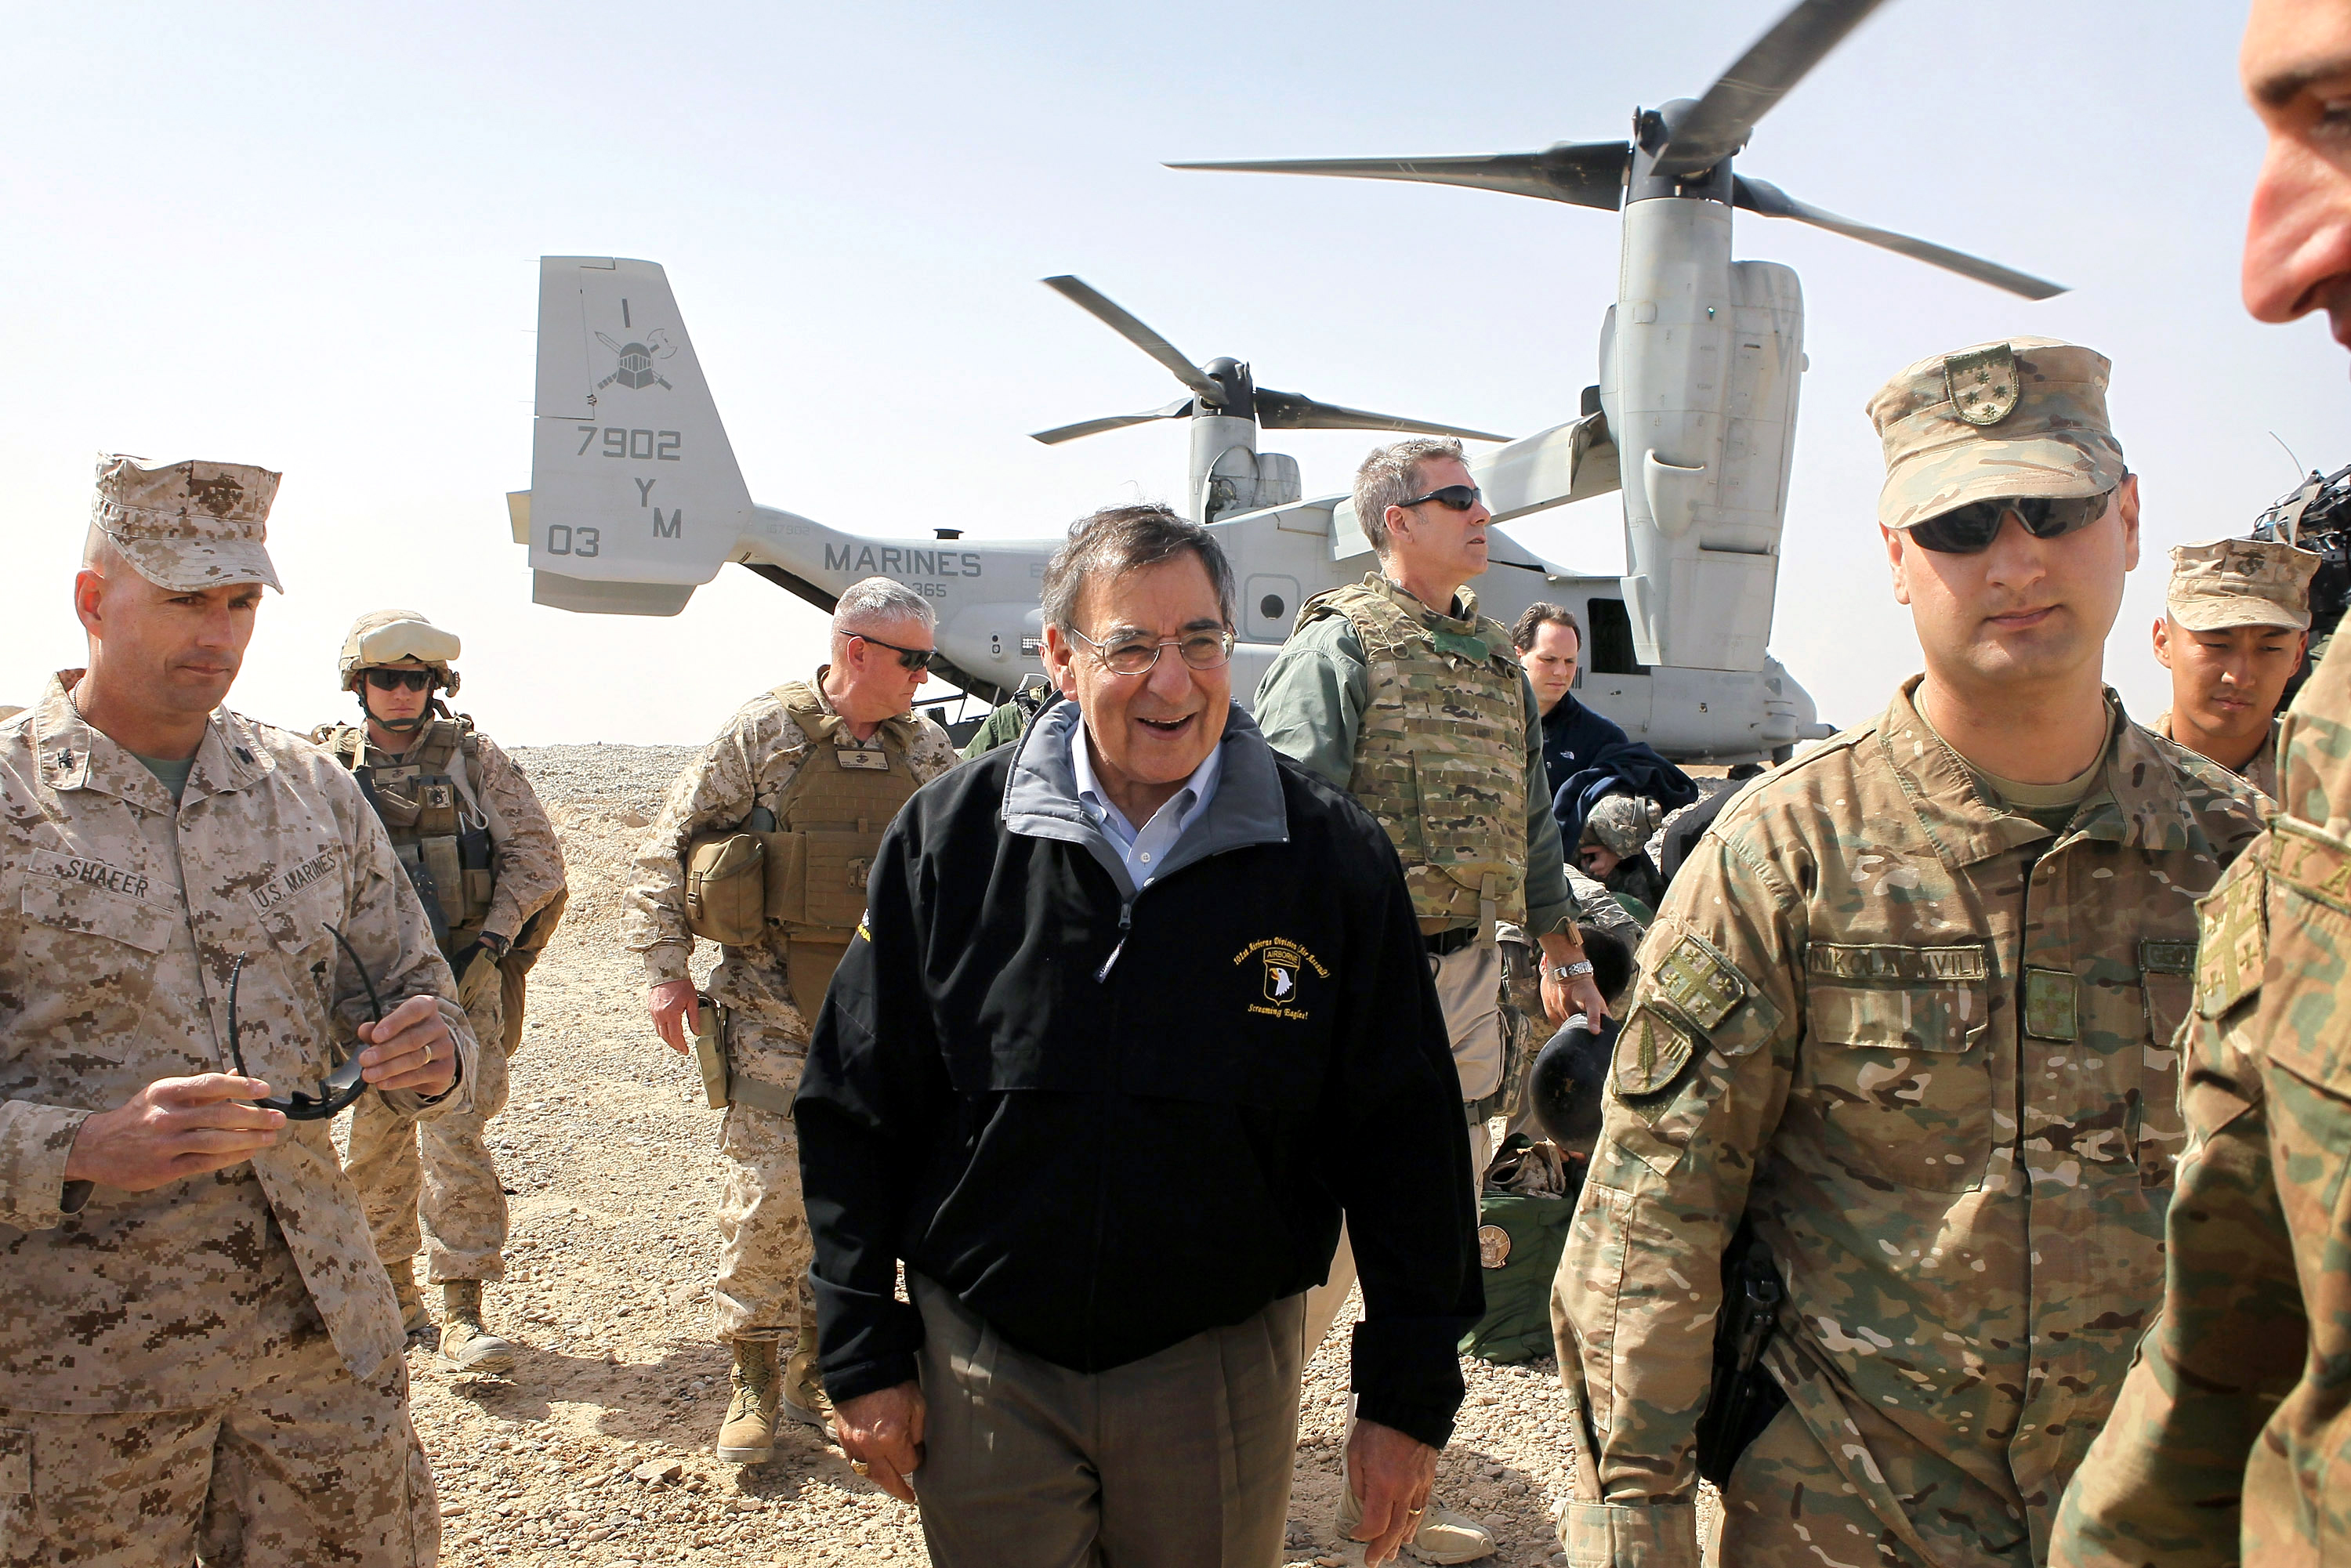 U.S. Defense Secretary Leon Panetta is greeted after arriving to greet troops at Forward Operating Base Shukvani, Afghanistan March 14, 2012. Panetta told troops in Afghanistan on Wednesday that the massacre of 16 Afghan civilians by an American soldier should not deter them from their mission to secure the country ahead of a 2014 NATO withdrawal deadline. REUTERS/Scott Olson